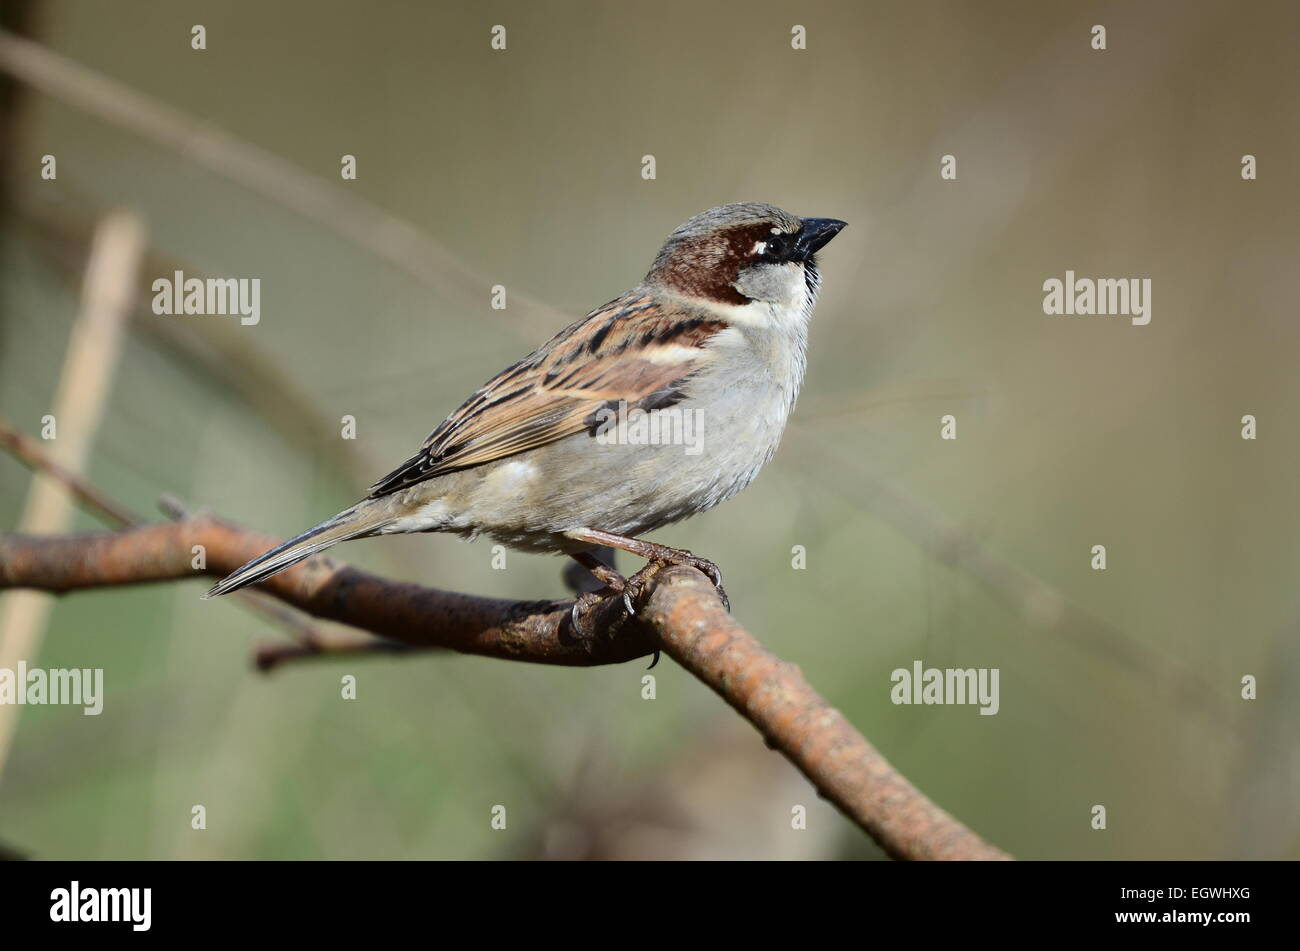 Male house sparrow UK - Stock Image